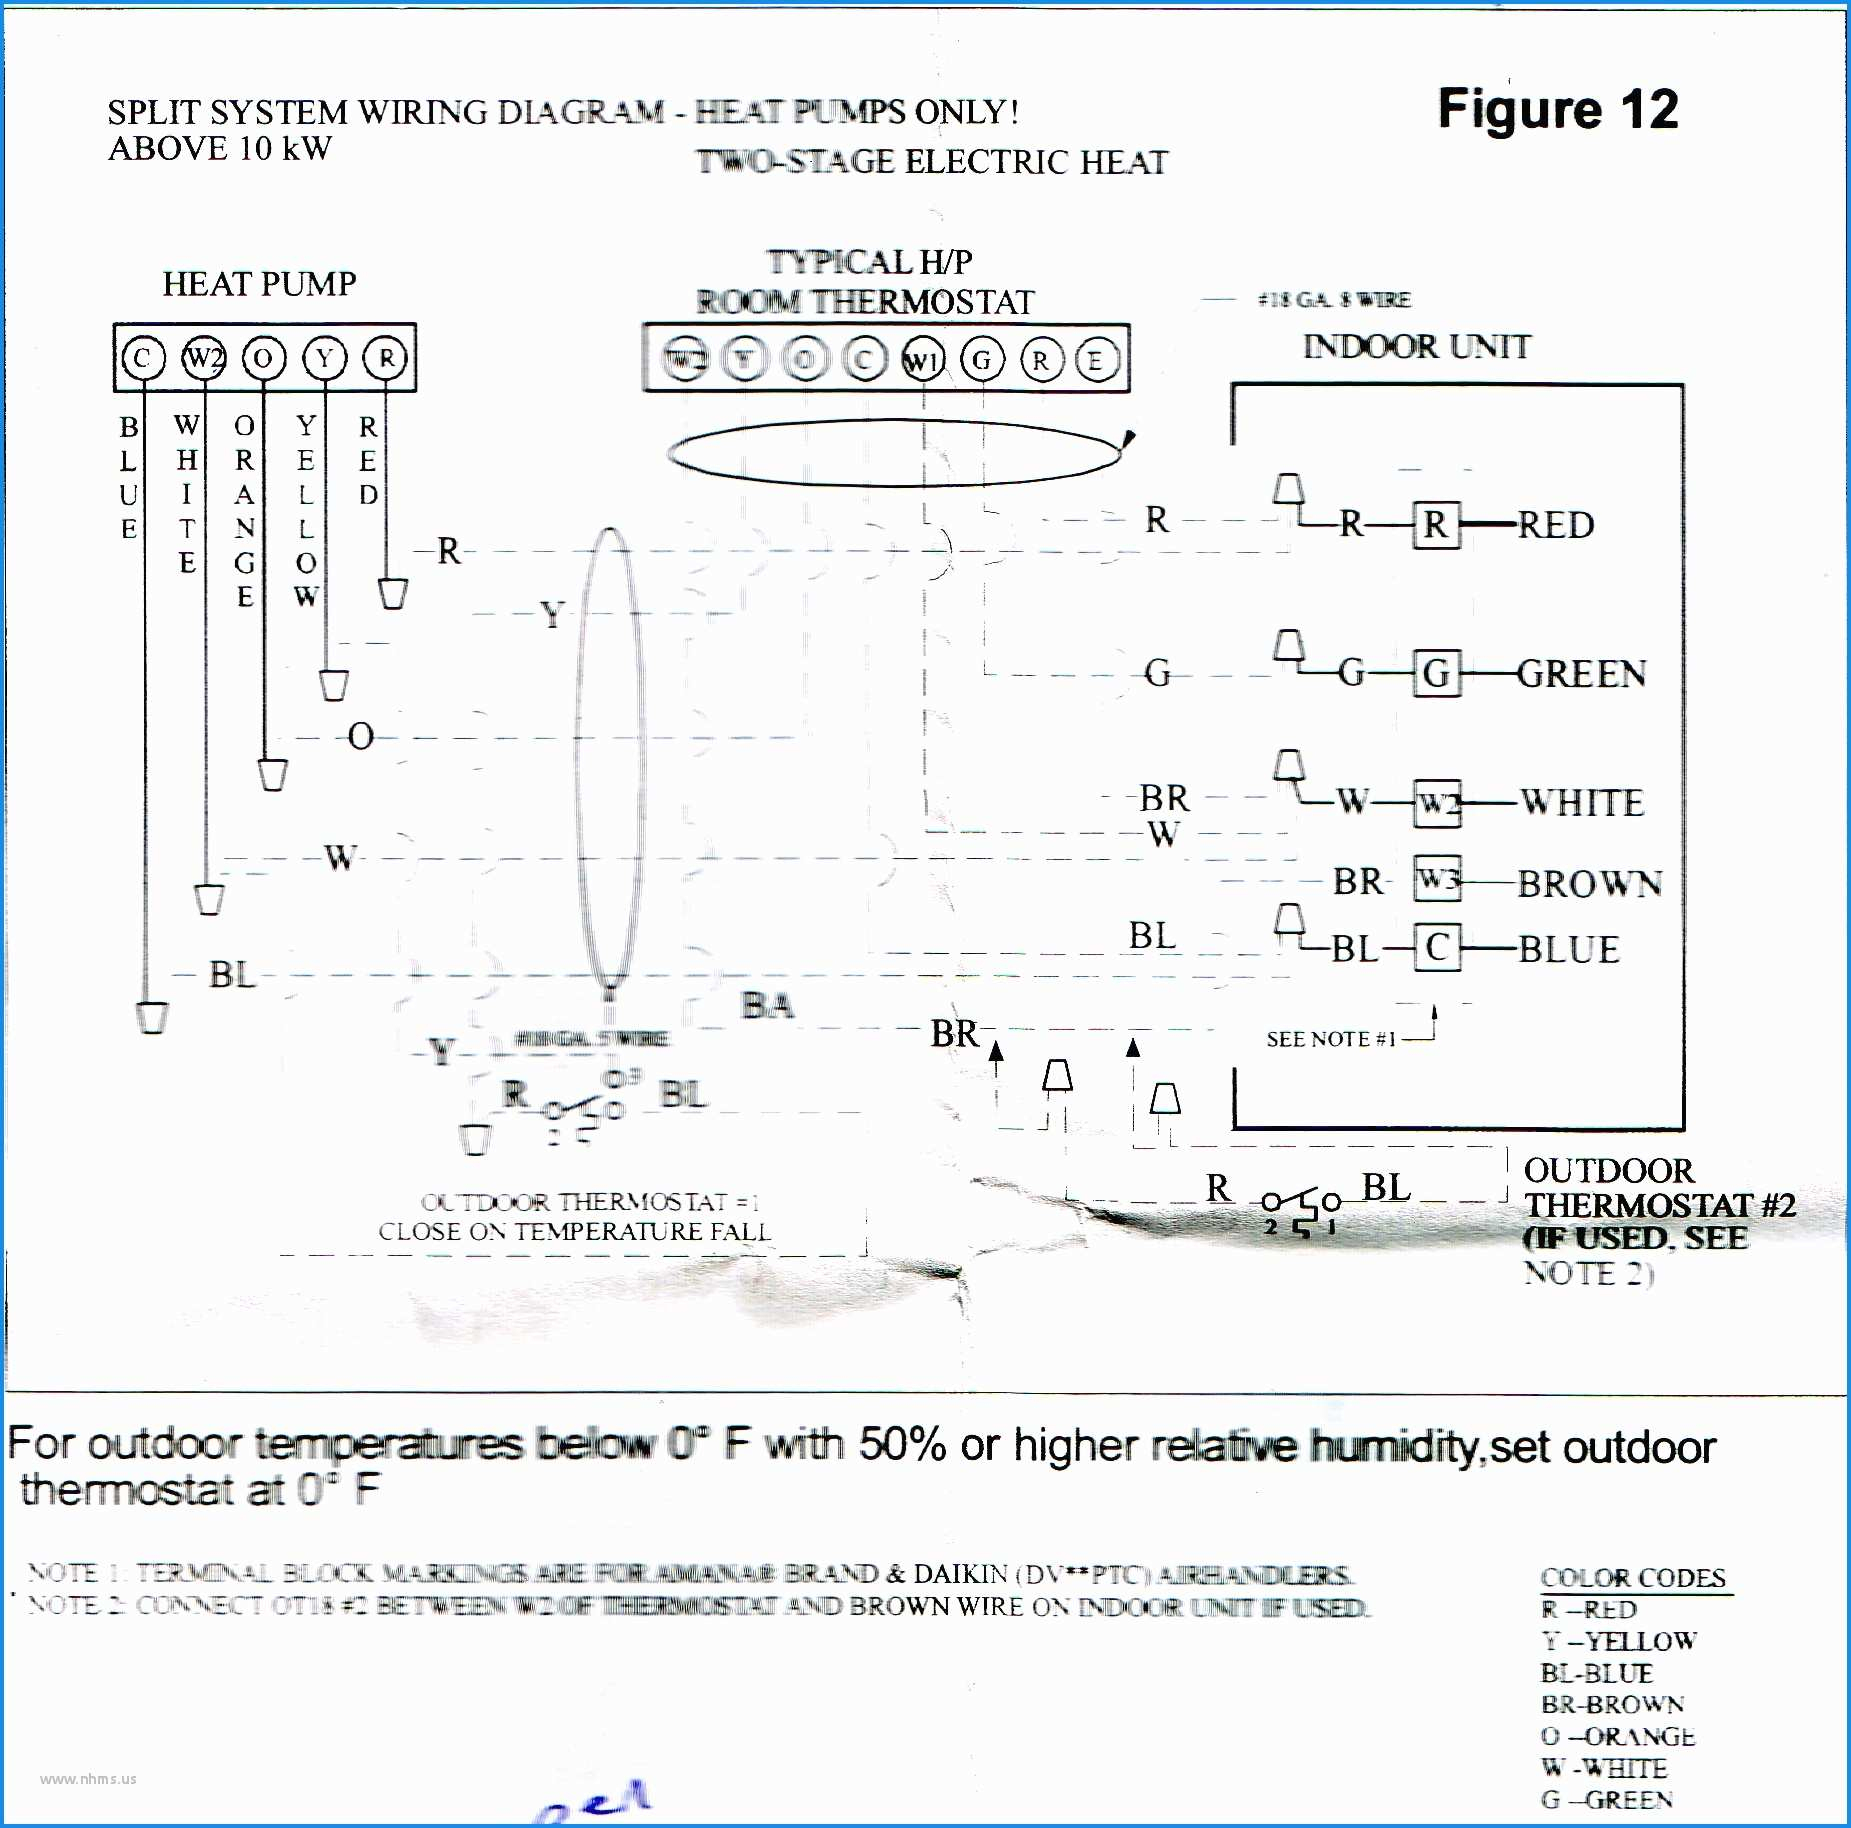 Surprising Outdoor Thermostat Wiring Diagram Wiring Diagram Data Schema Wiring 101 Orsalhahutechinfo